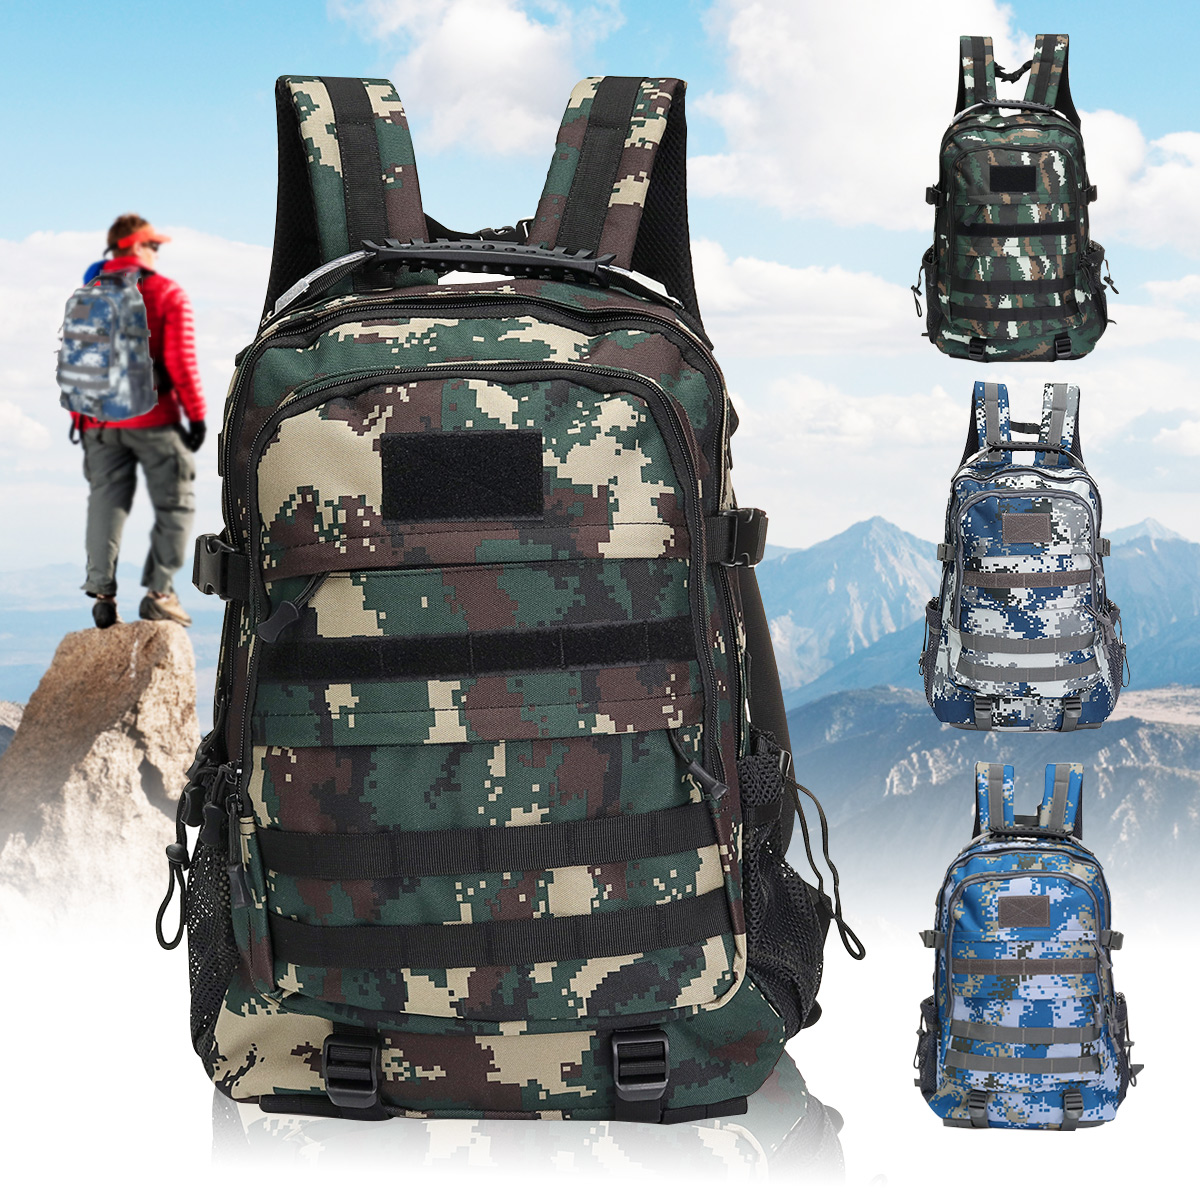 50L Outdoor Tactical Backpack Waterproof Nylon Shoulder Bag Sports Camping Hiking Travel Daypack